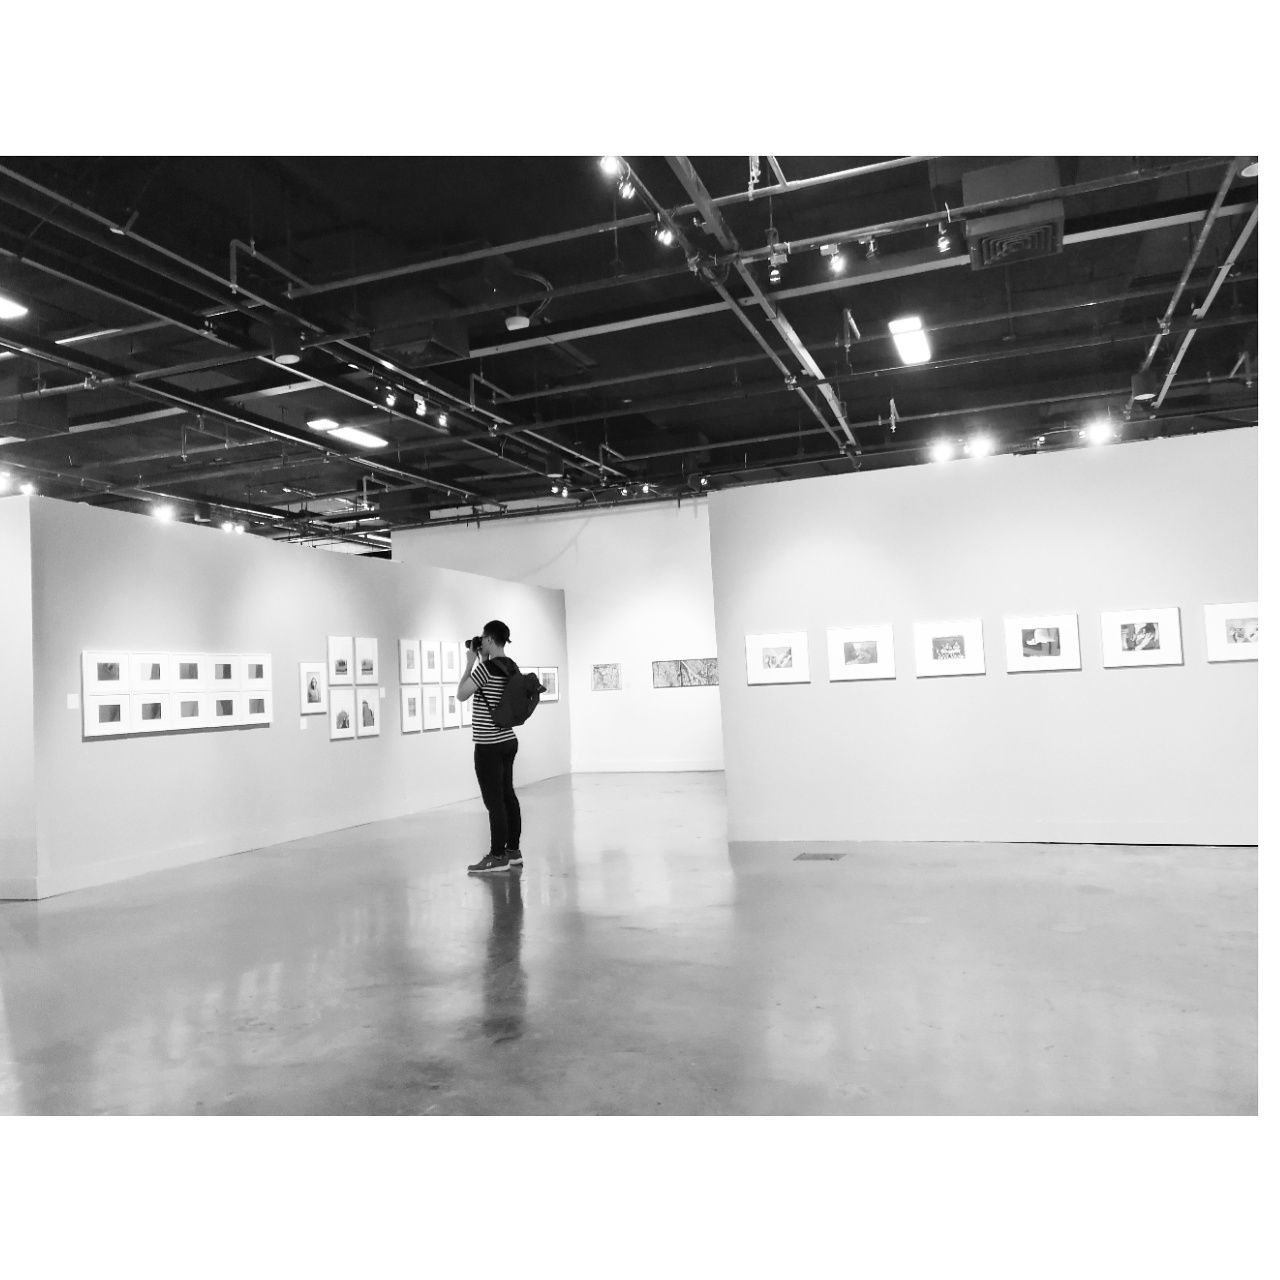 One eye see, the orther feels. Art is all around.☺ Art Gallery Art Exhibition Photoexhibition Imagination See Feel Soul Black&white Monochrome Peaceful Calm Relax Onefineday Enjoy